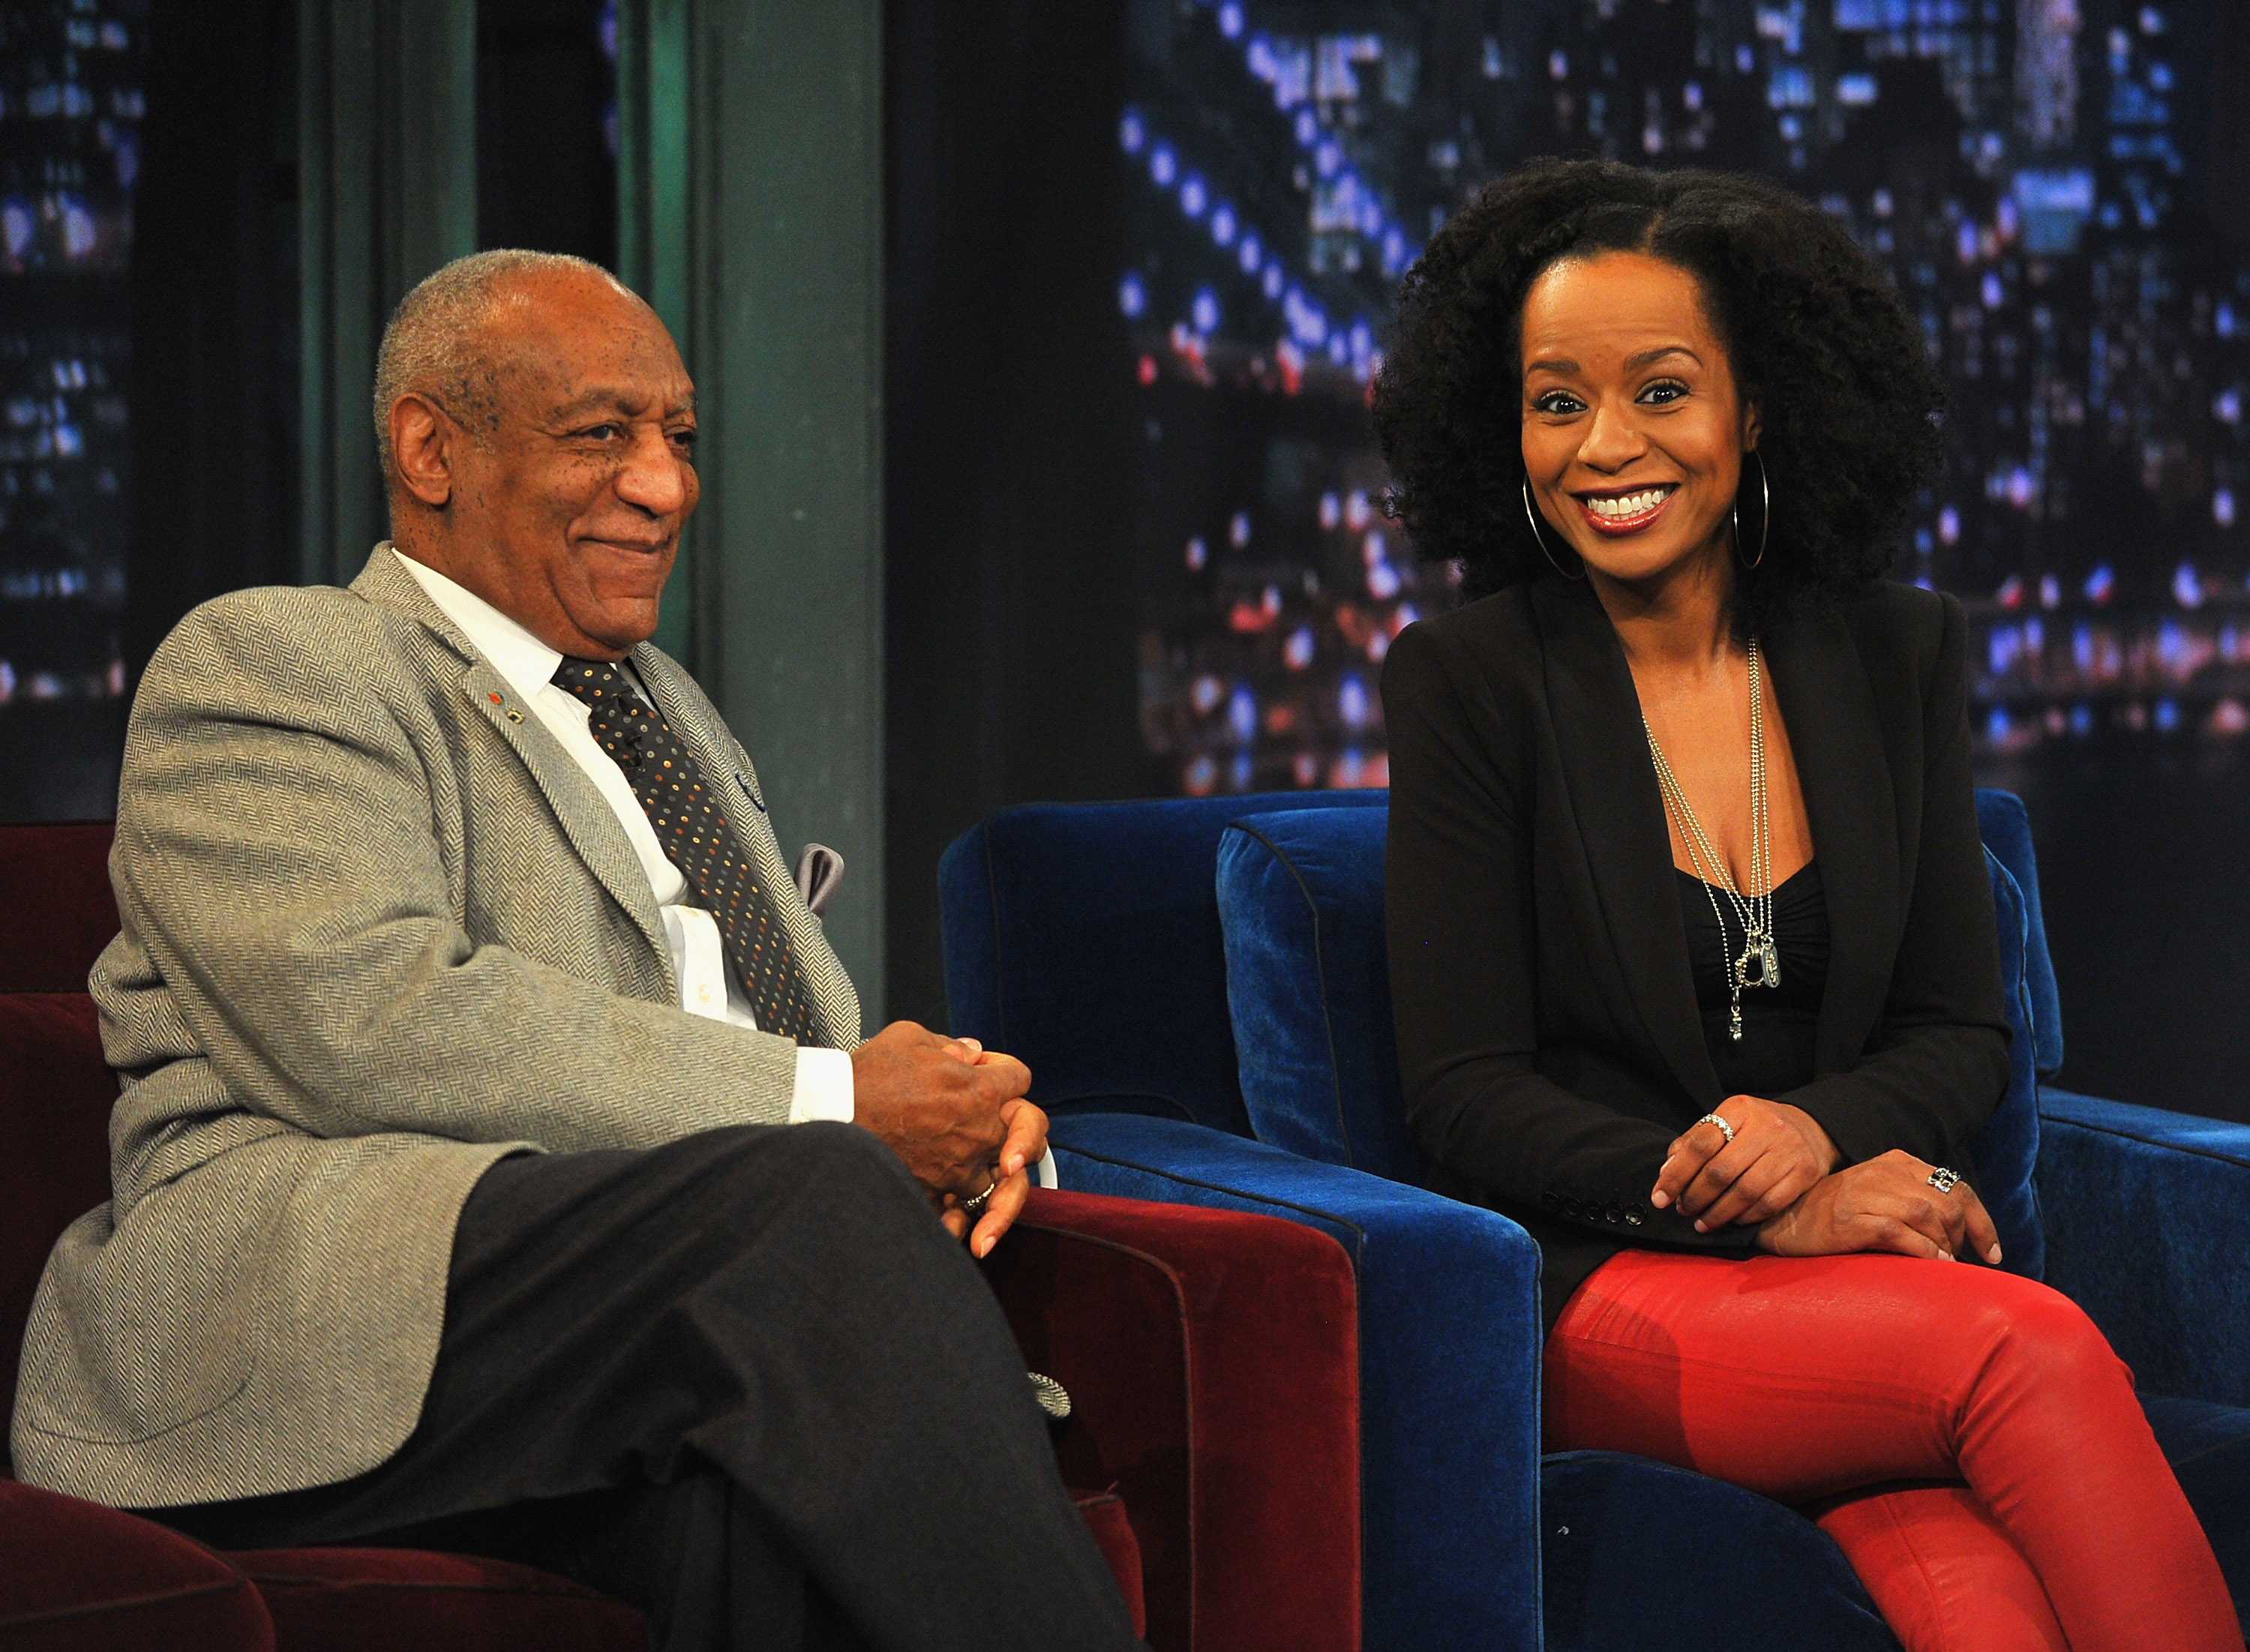 Tempestt Bledsoe Visits 'Late Night With Jimmy Fallon'